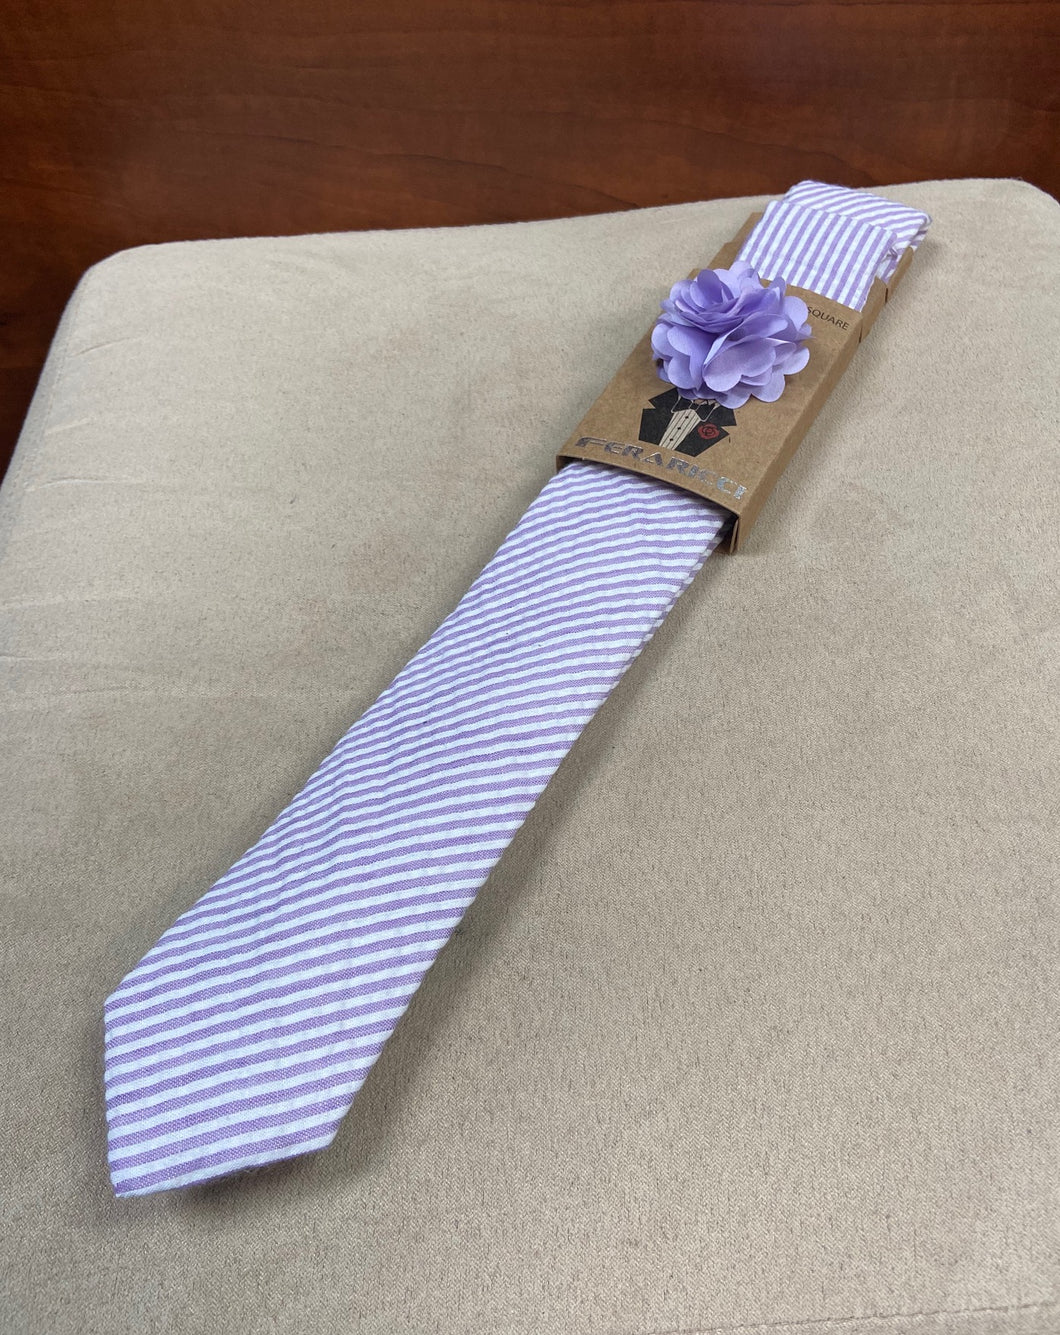 Seersucker Purple/White Striped Tie with Flower Pin and Pocket Square